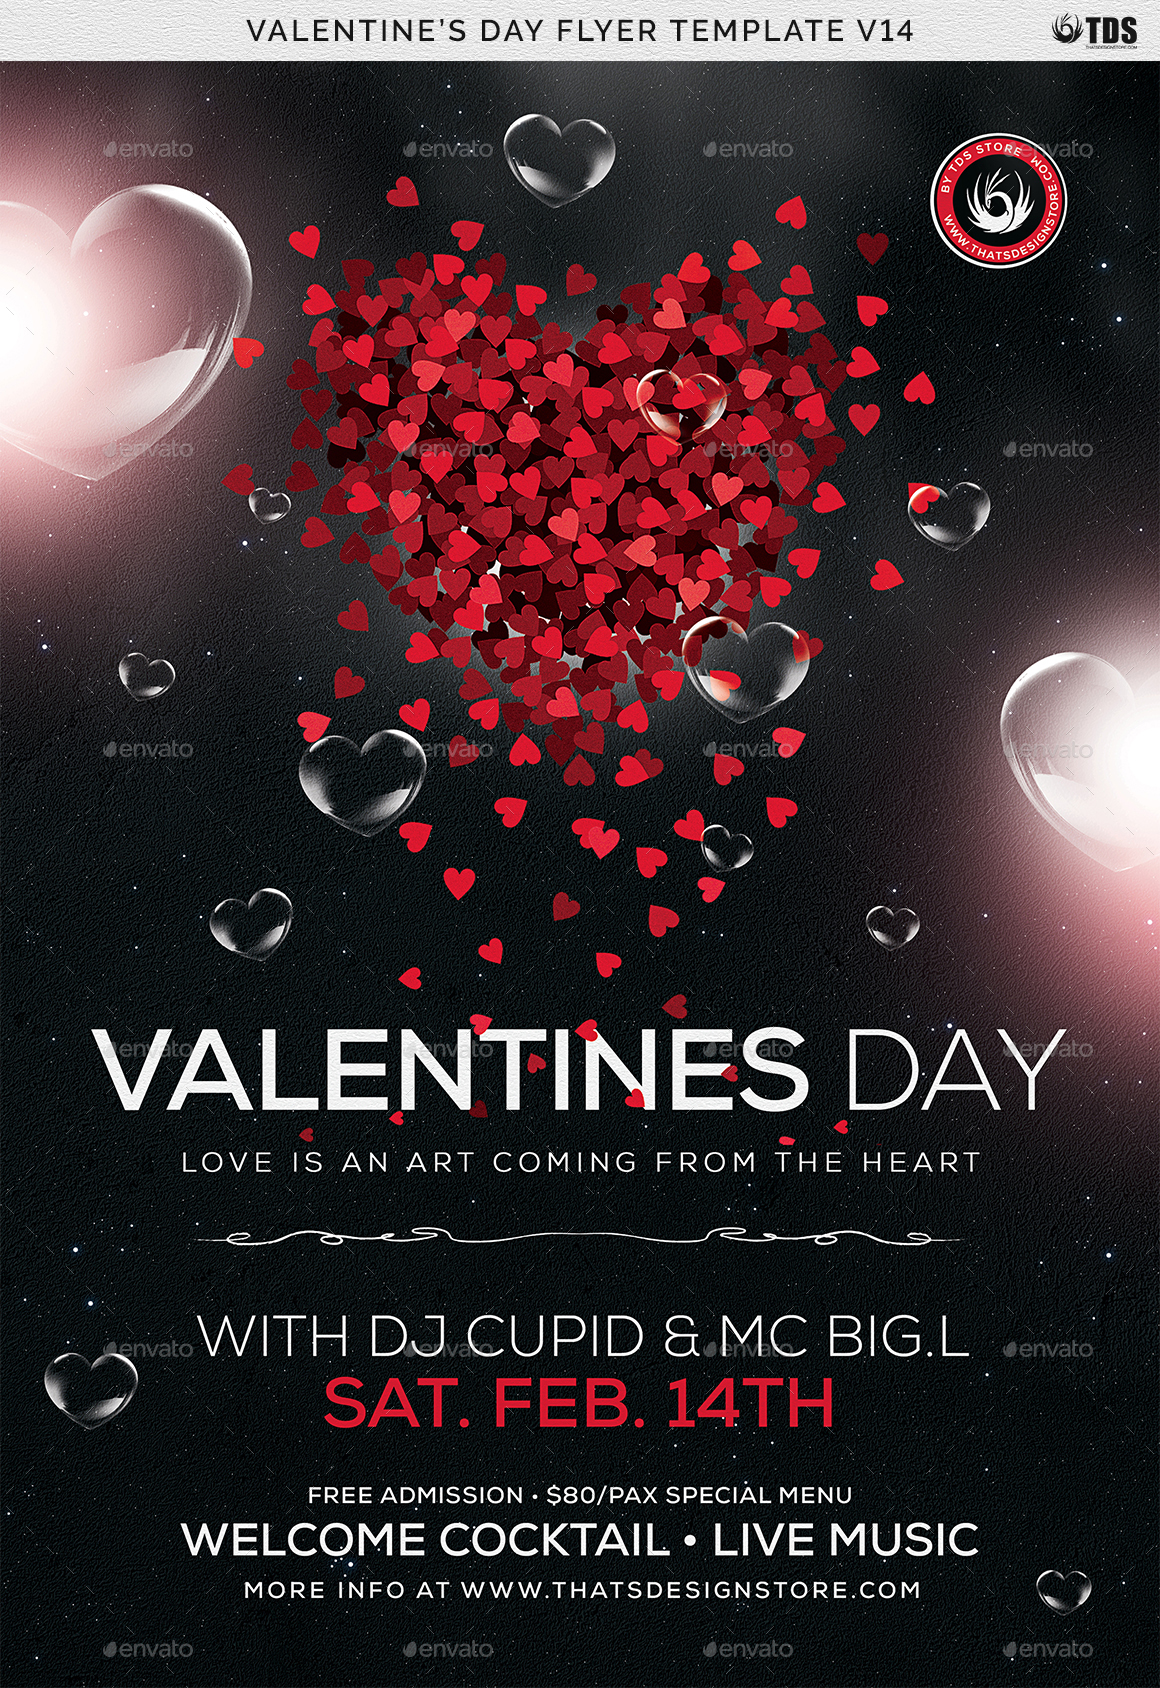 Valentines Day Flyer Template V14 By Thatsdesign Graphicriver